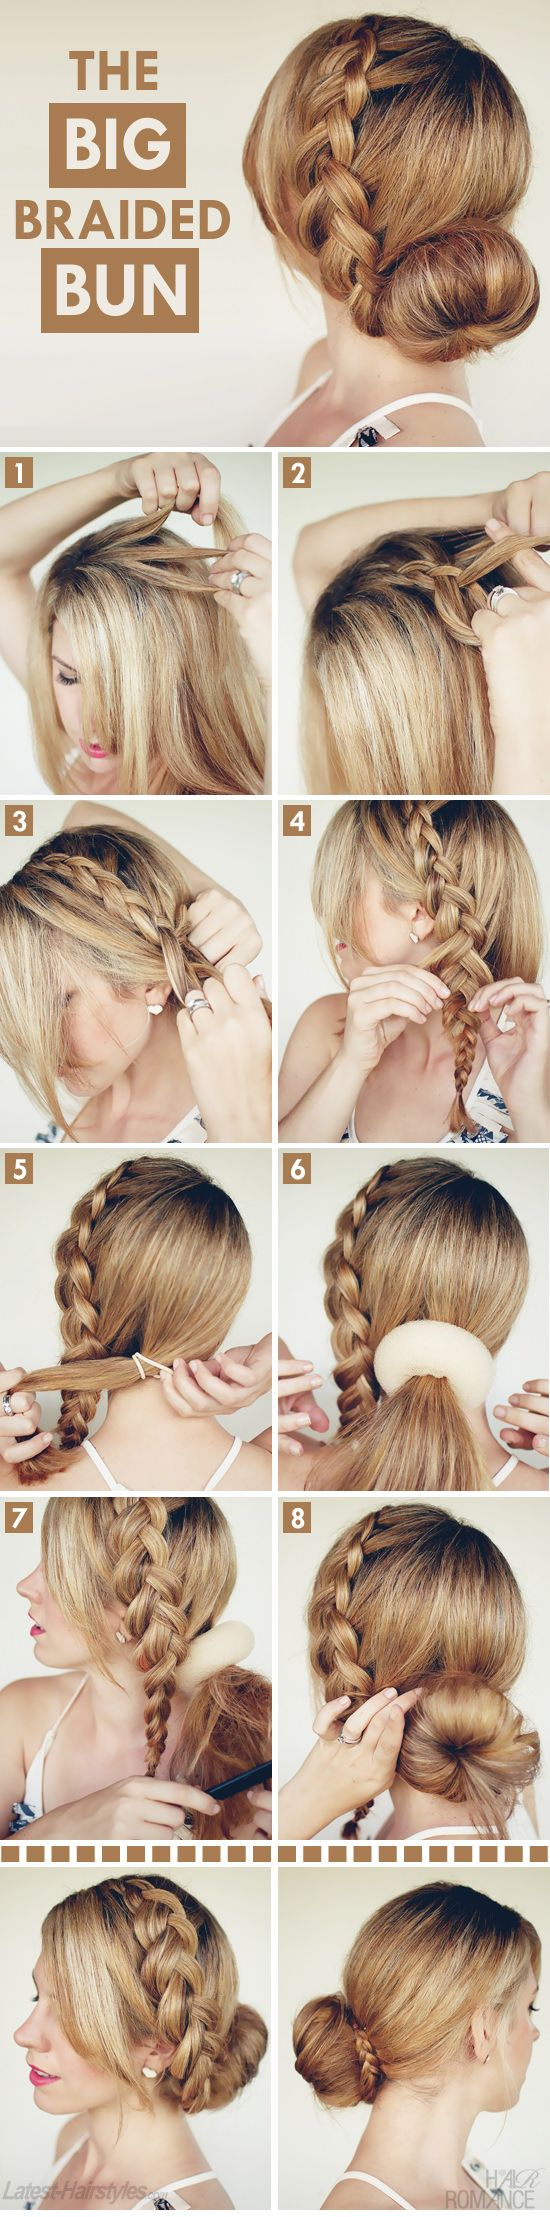 20 Chic Bun Hairstyles We Love!